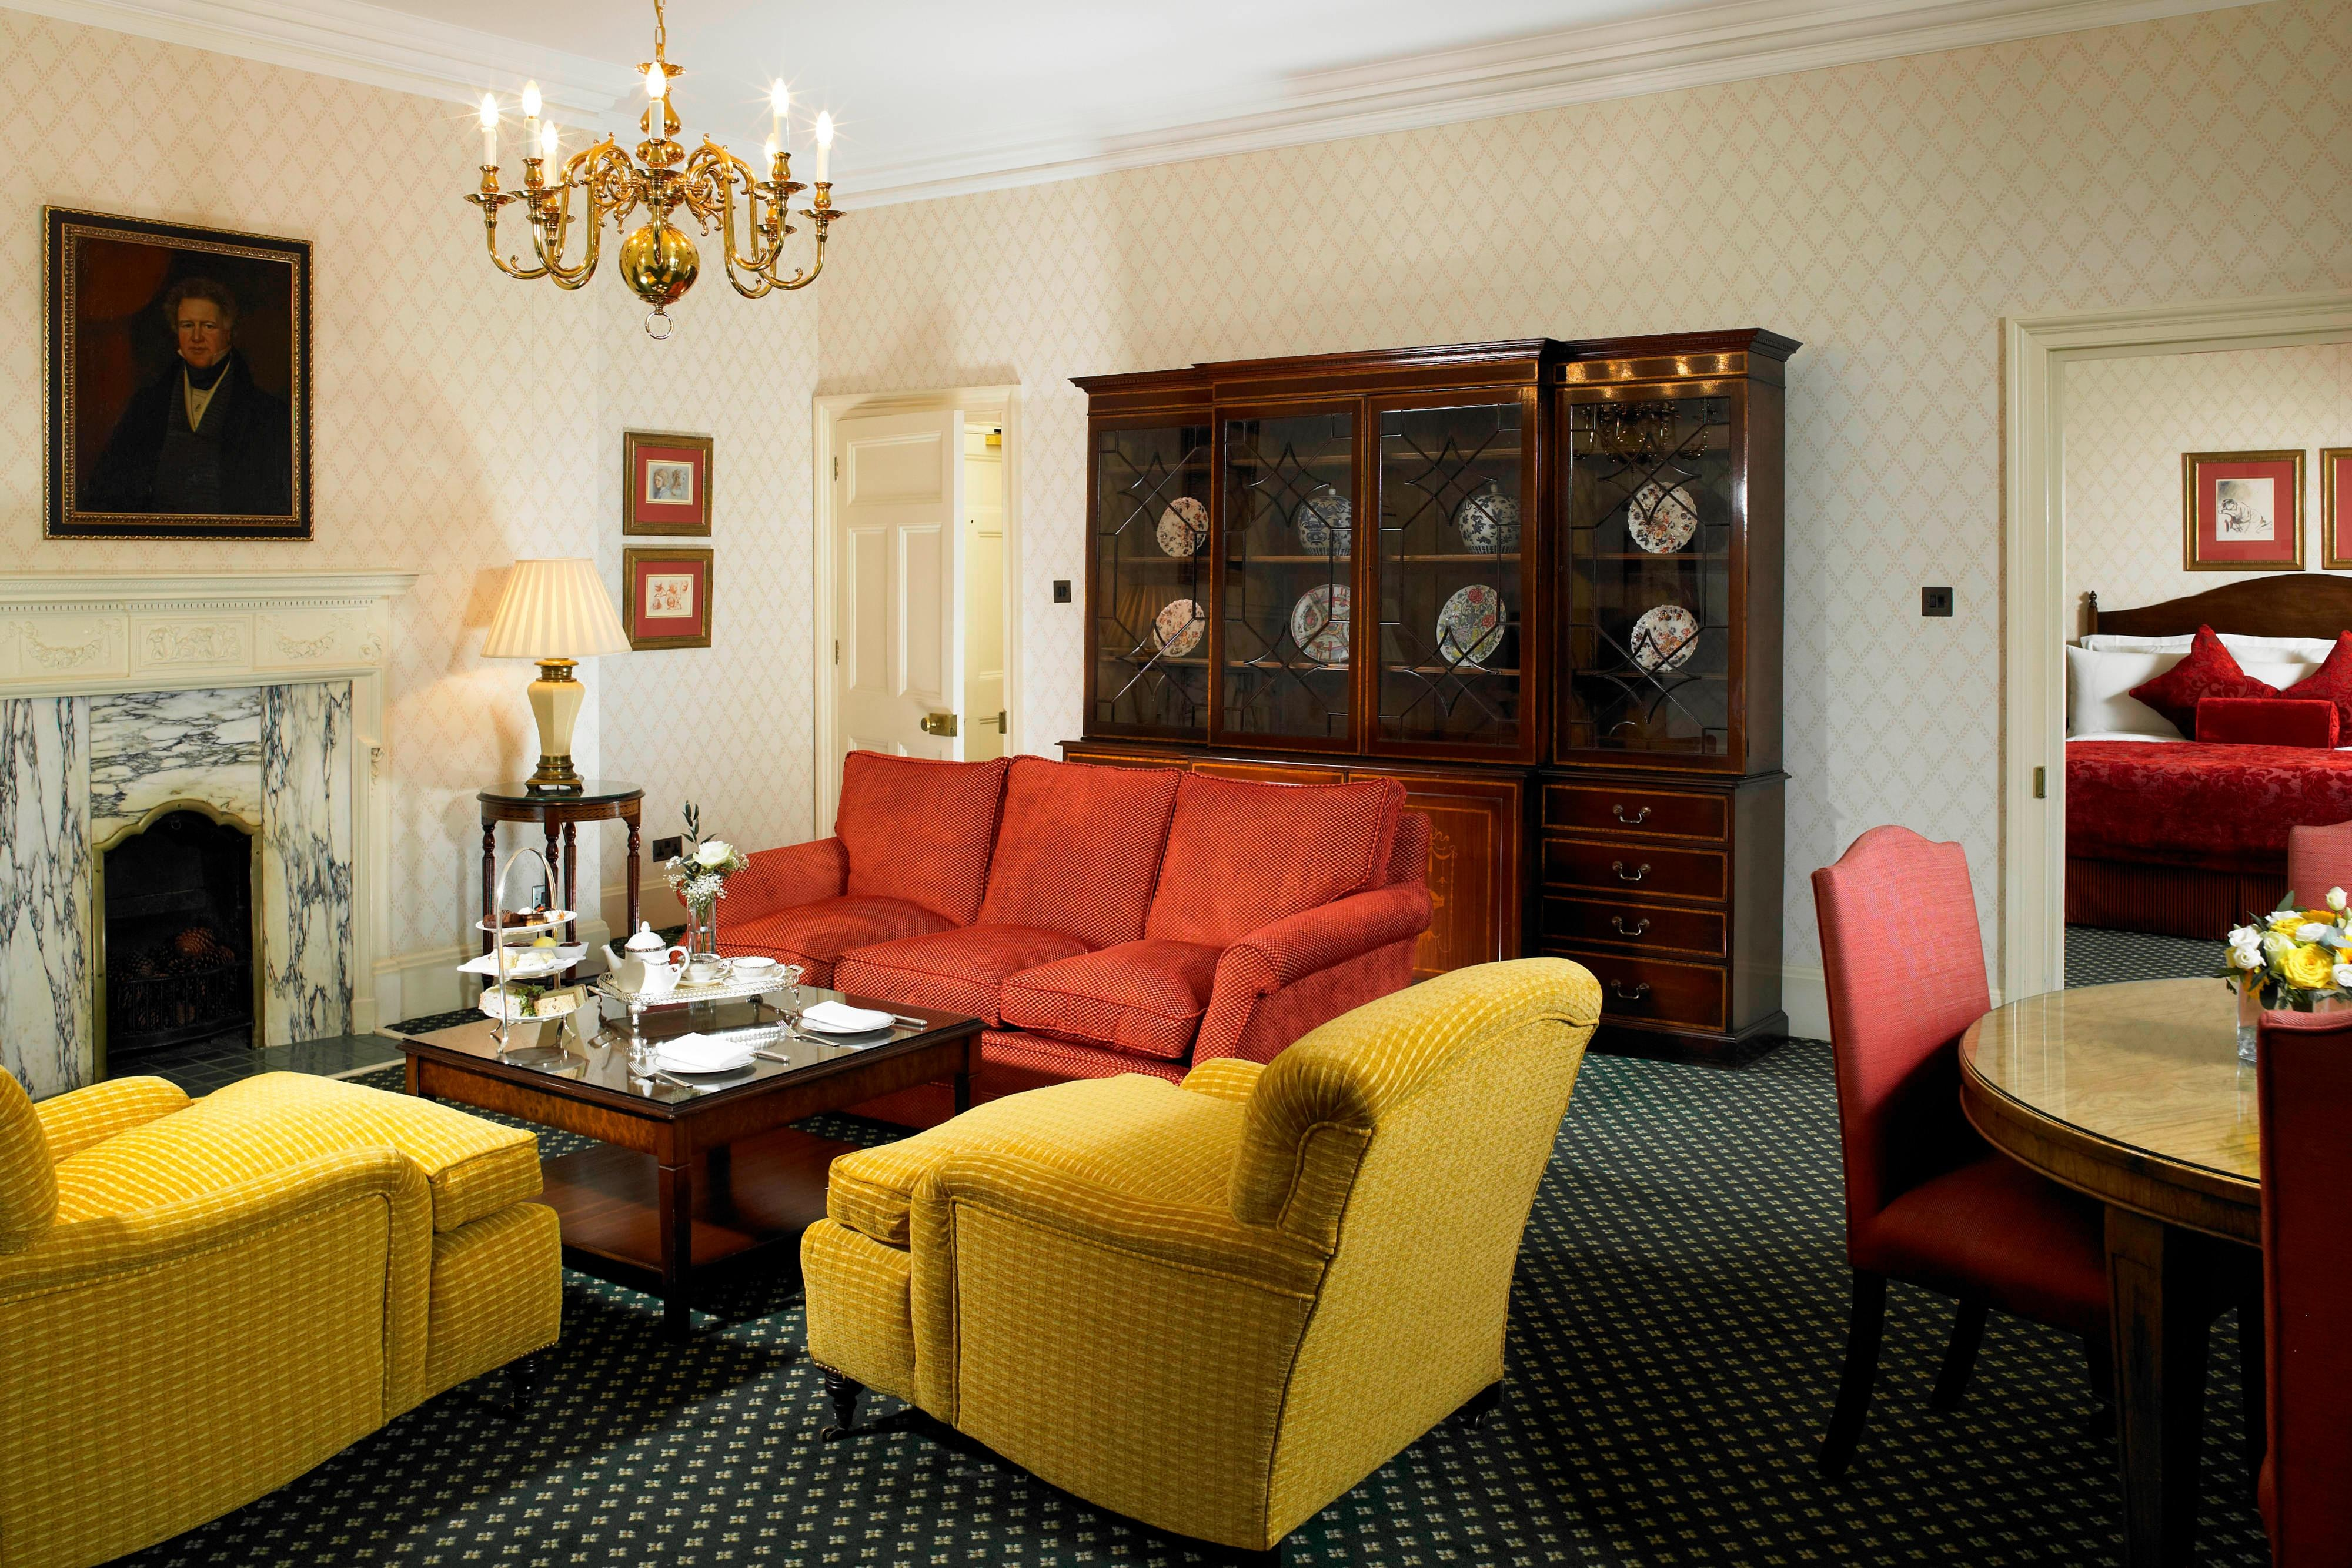 Suite Hanbury, Hanbury Manor, Reino Unido